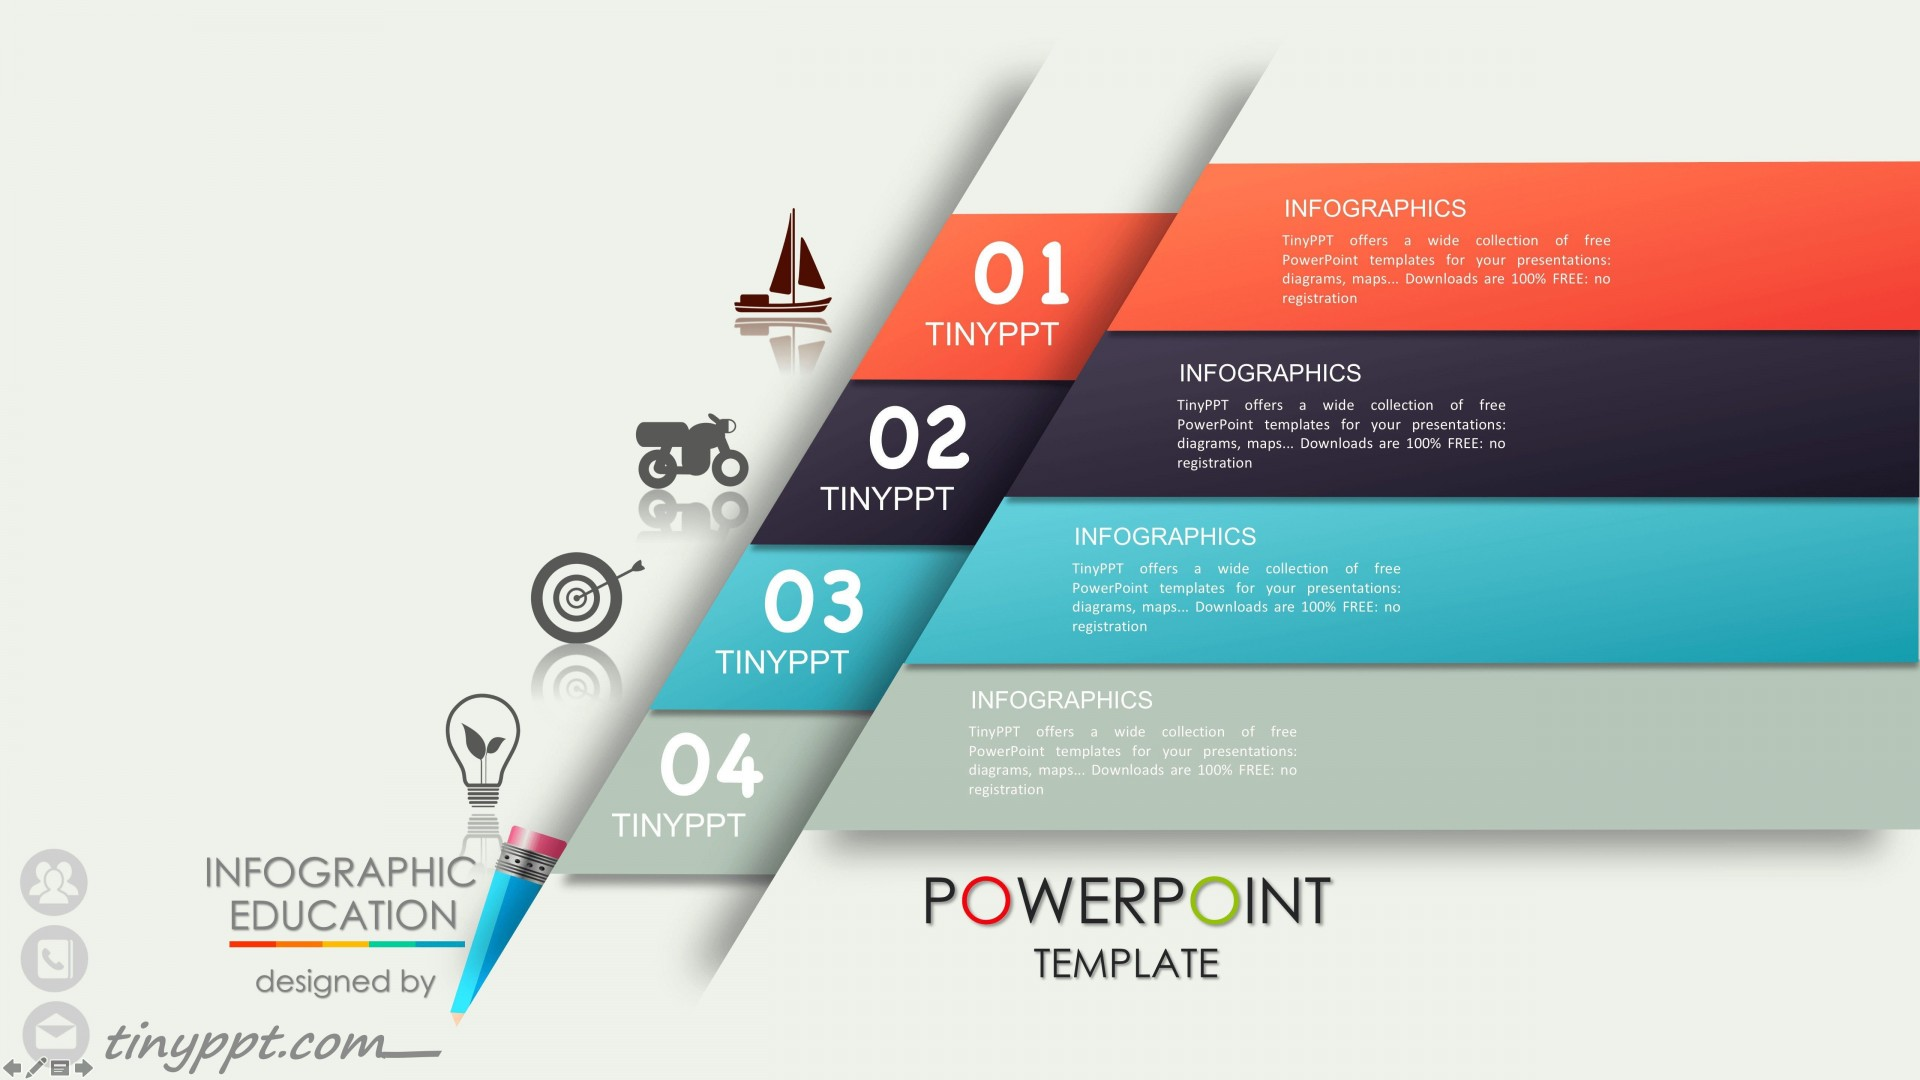 000 Archaicawful Free Download Ppt Template For Technical Presentation High Resolution  Simple Project Sample1920